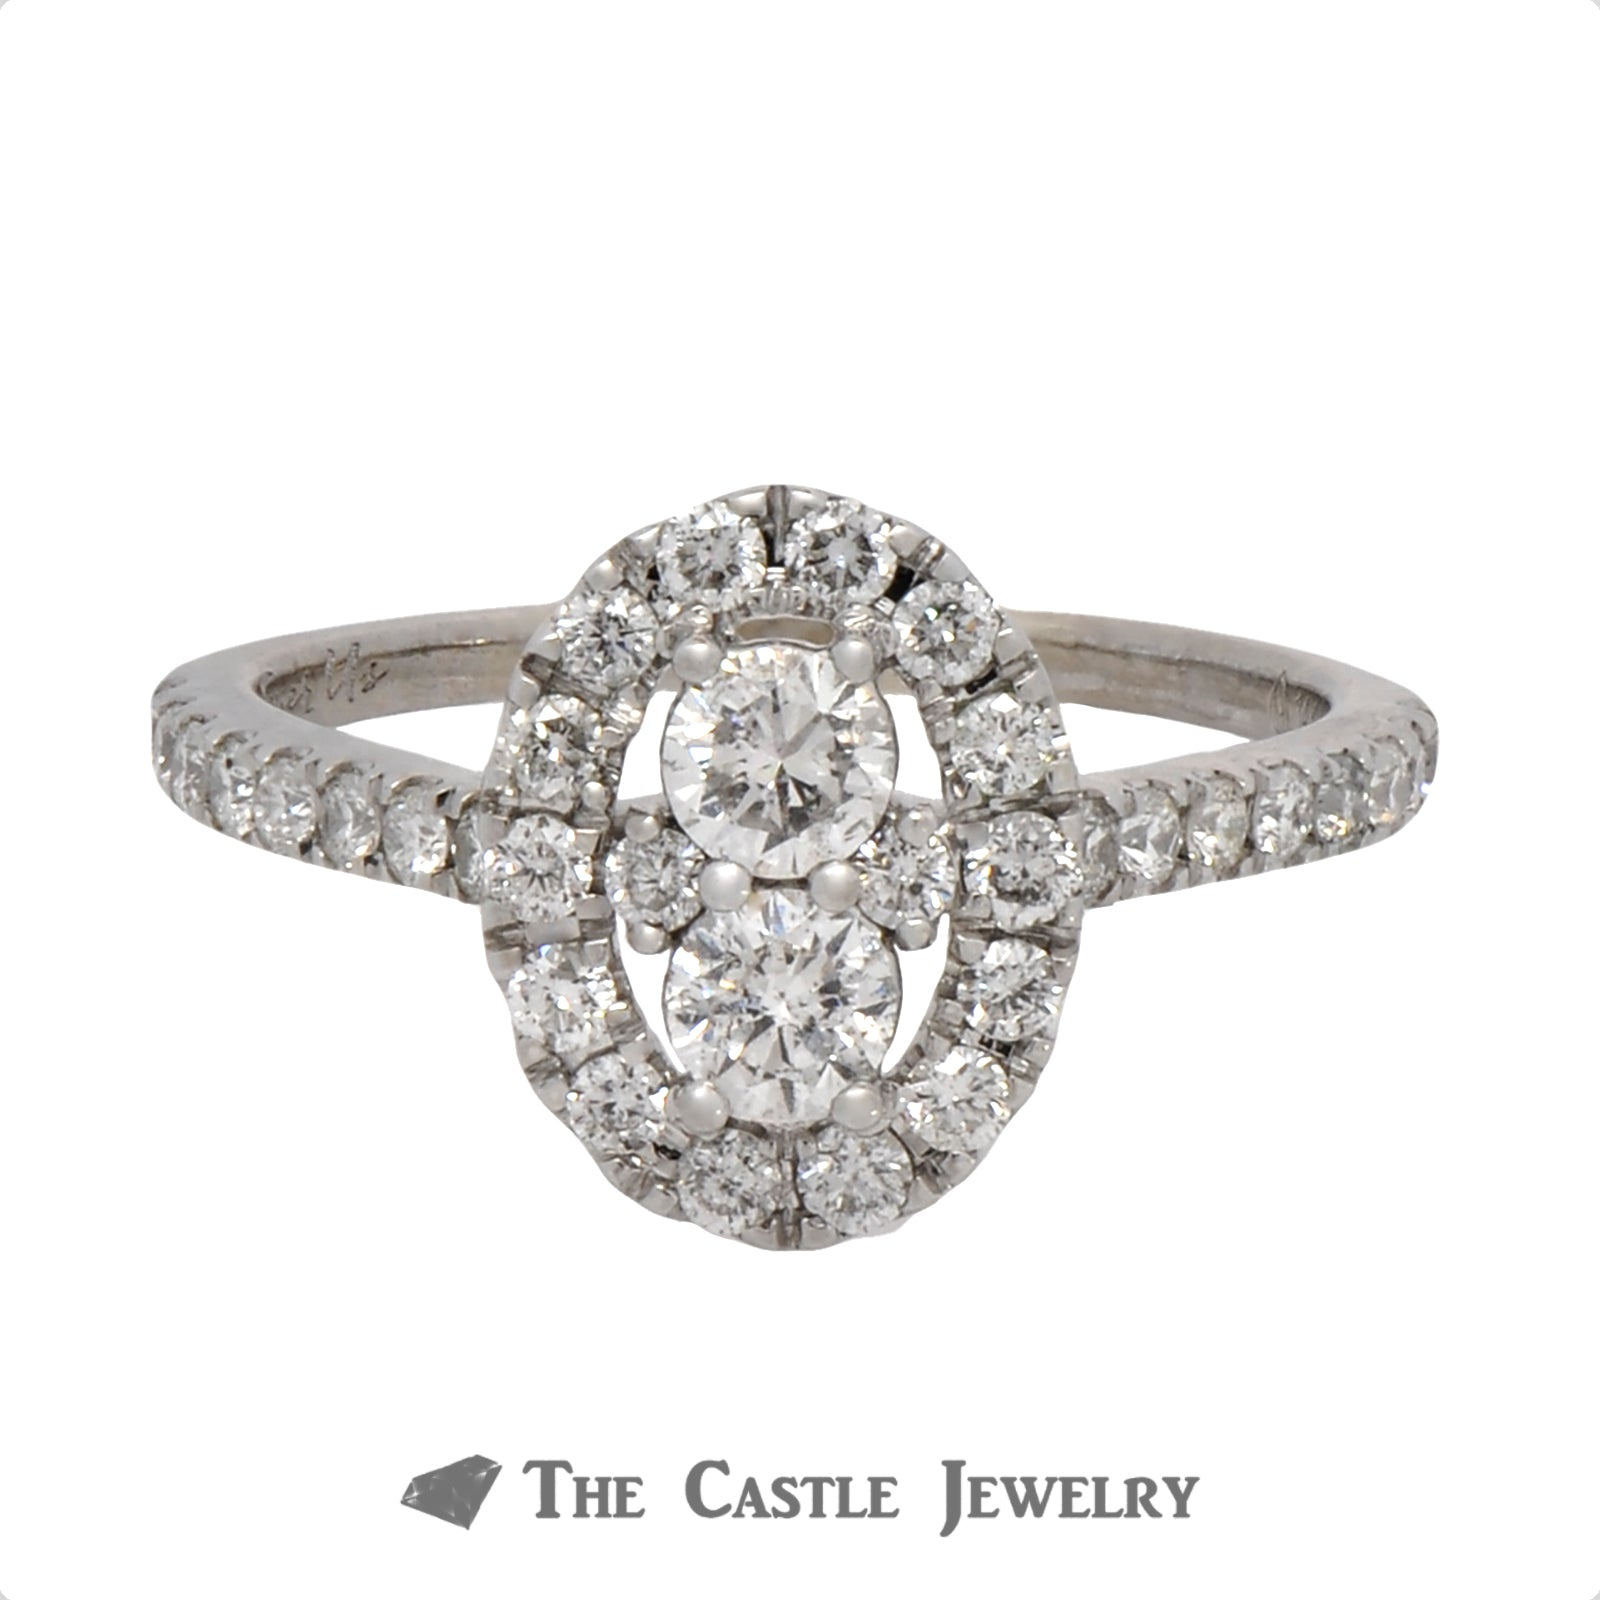 Double Diamond Halo Ever Us Engagement Ring with Diamond Accents in 14k White Gold